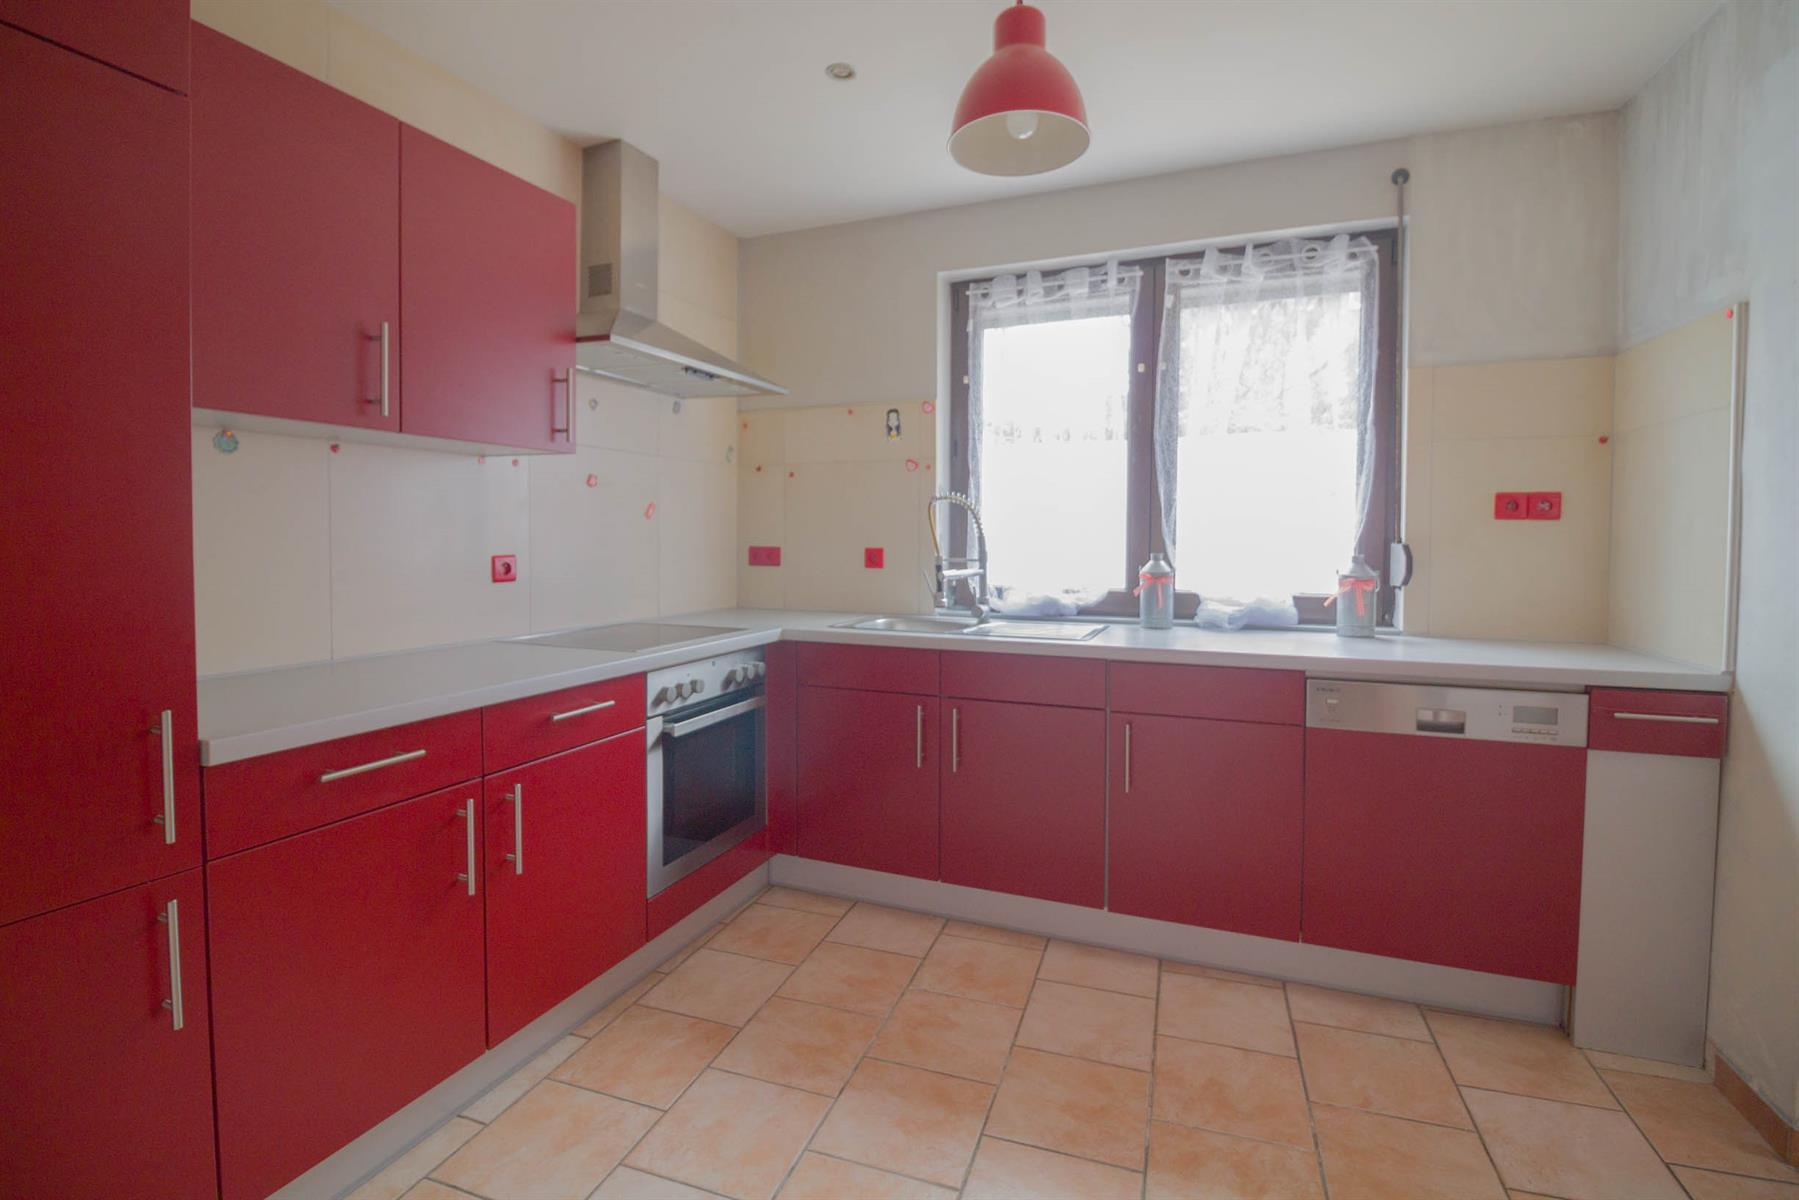 Maison - Courcelles (Trazegnies) - #4445047-6